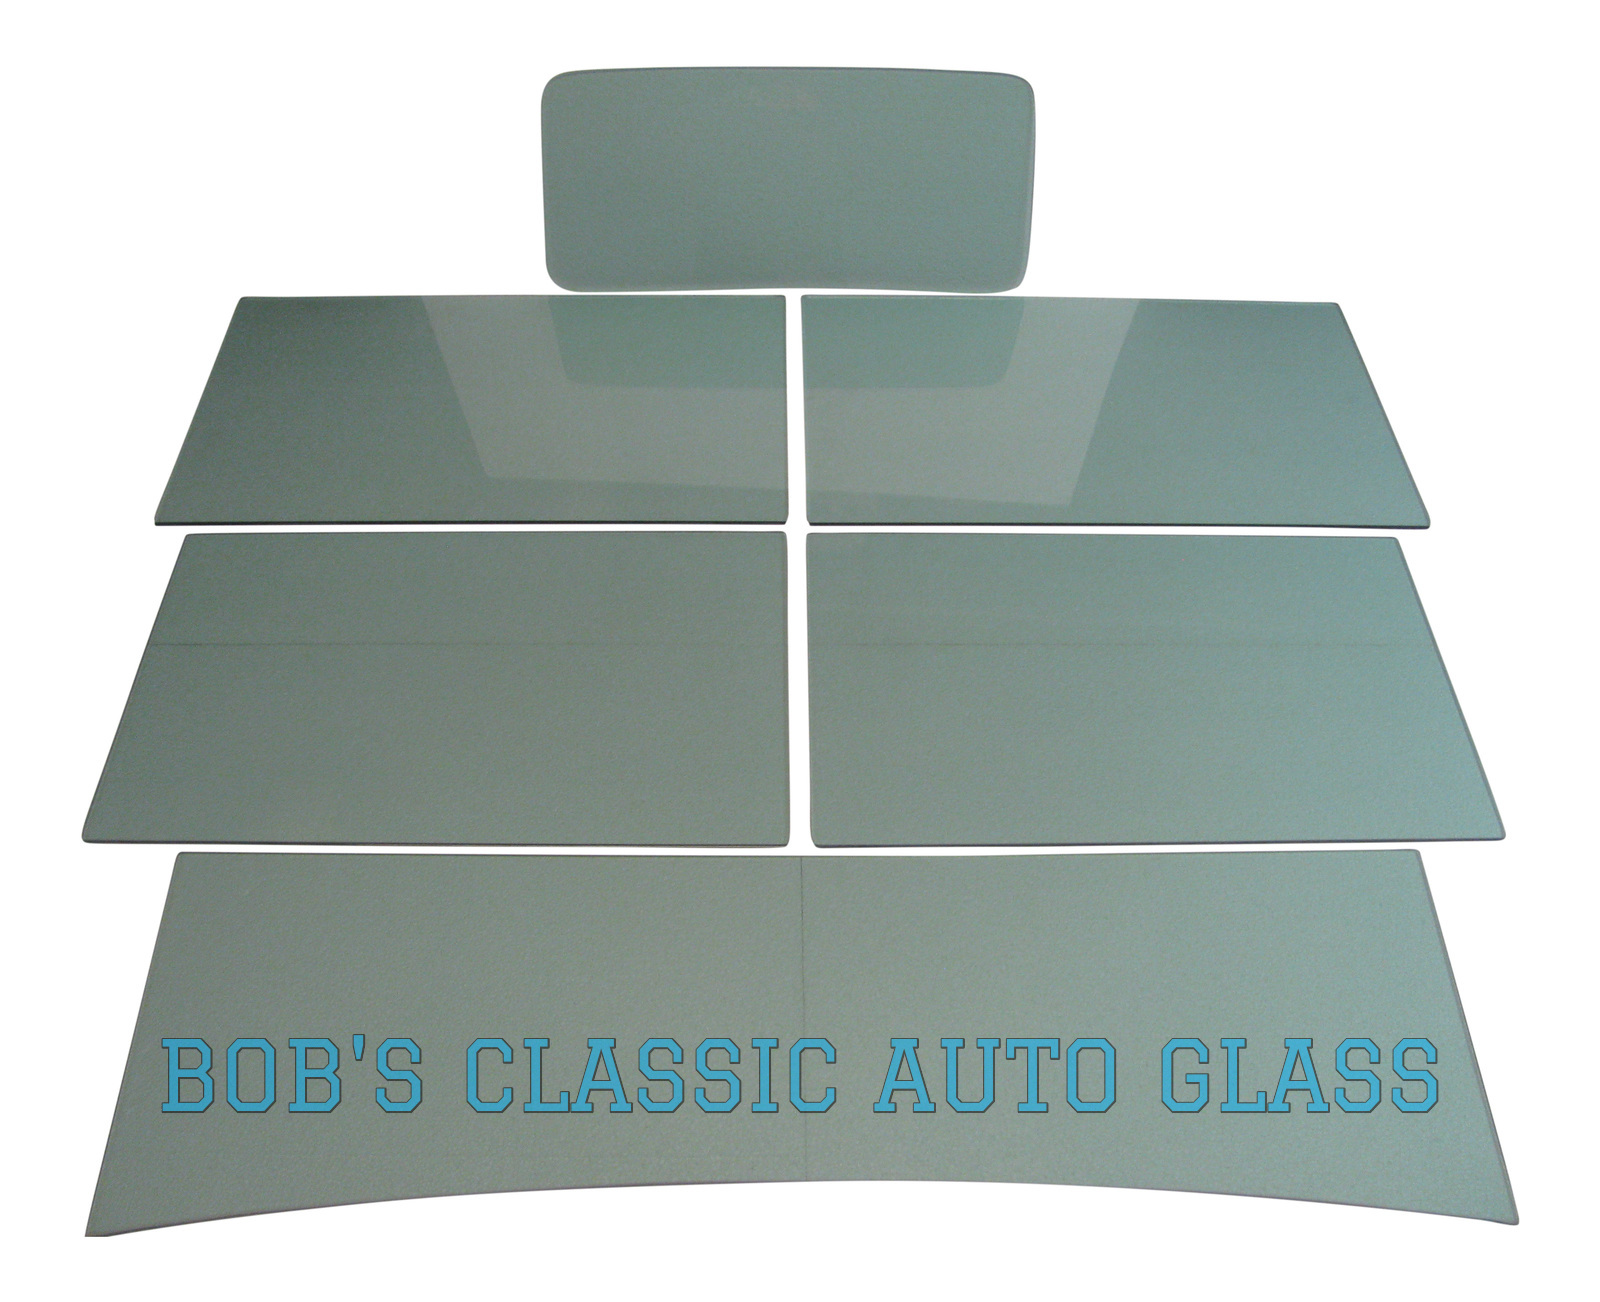 1930 OLDSMOBILE TUDOR SEDAN CLASSIC AUTO GLASS VIN